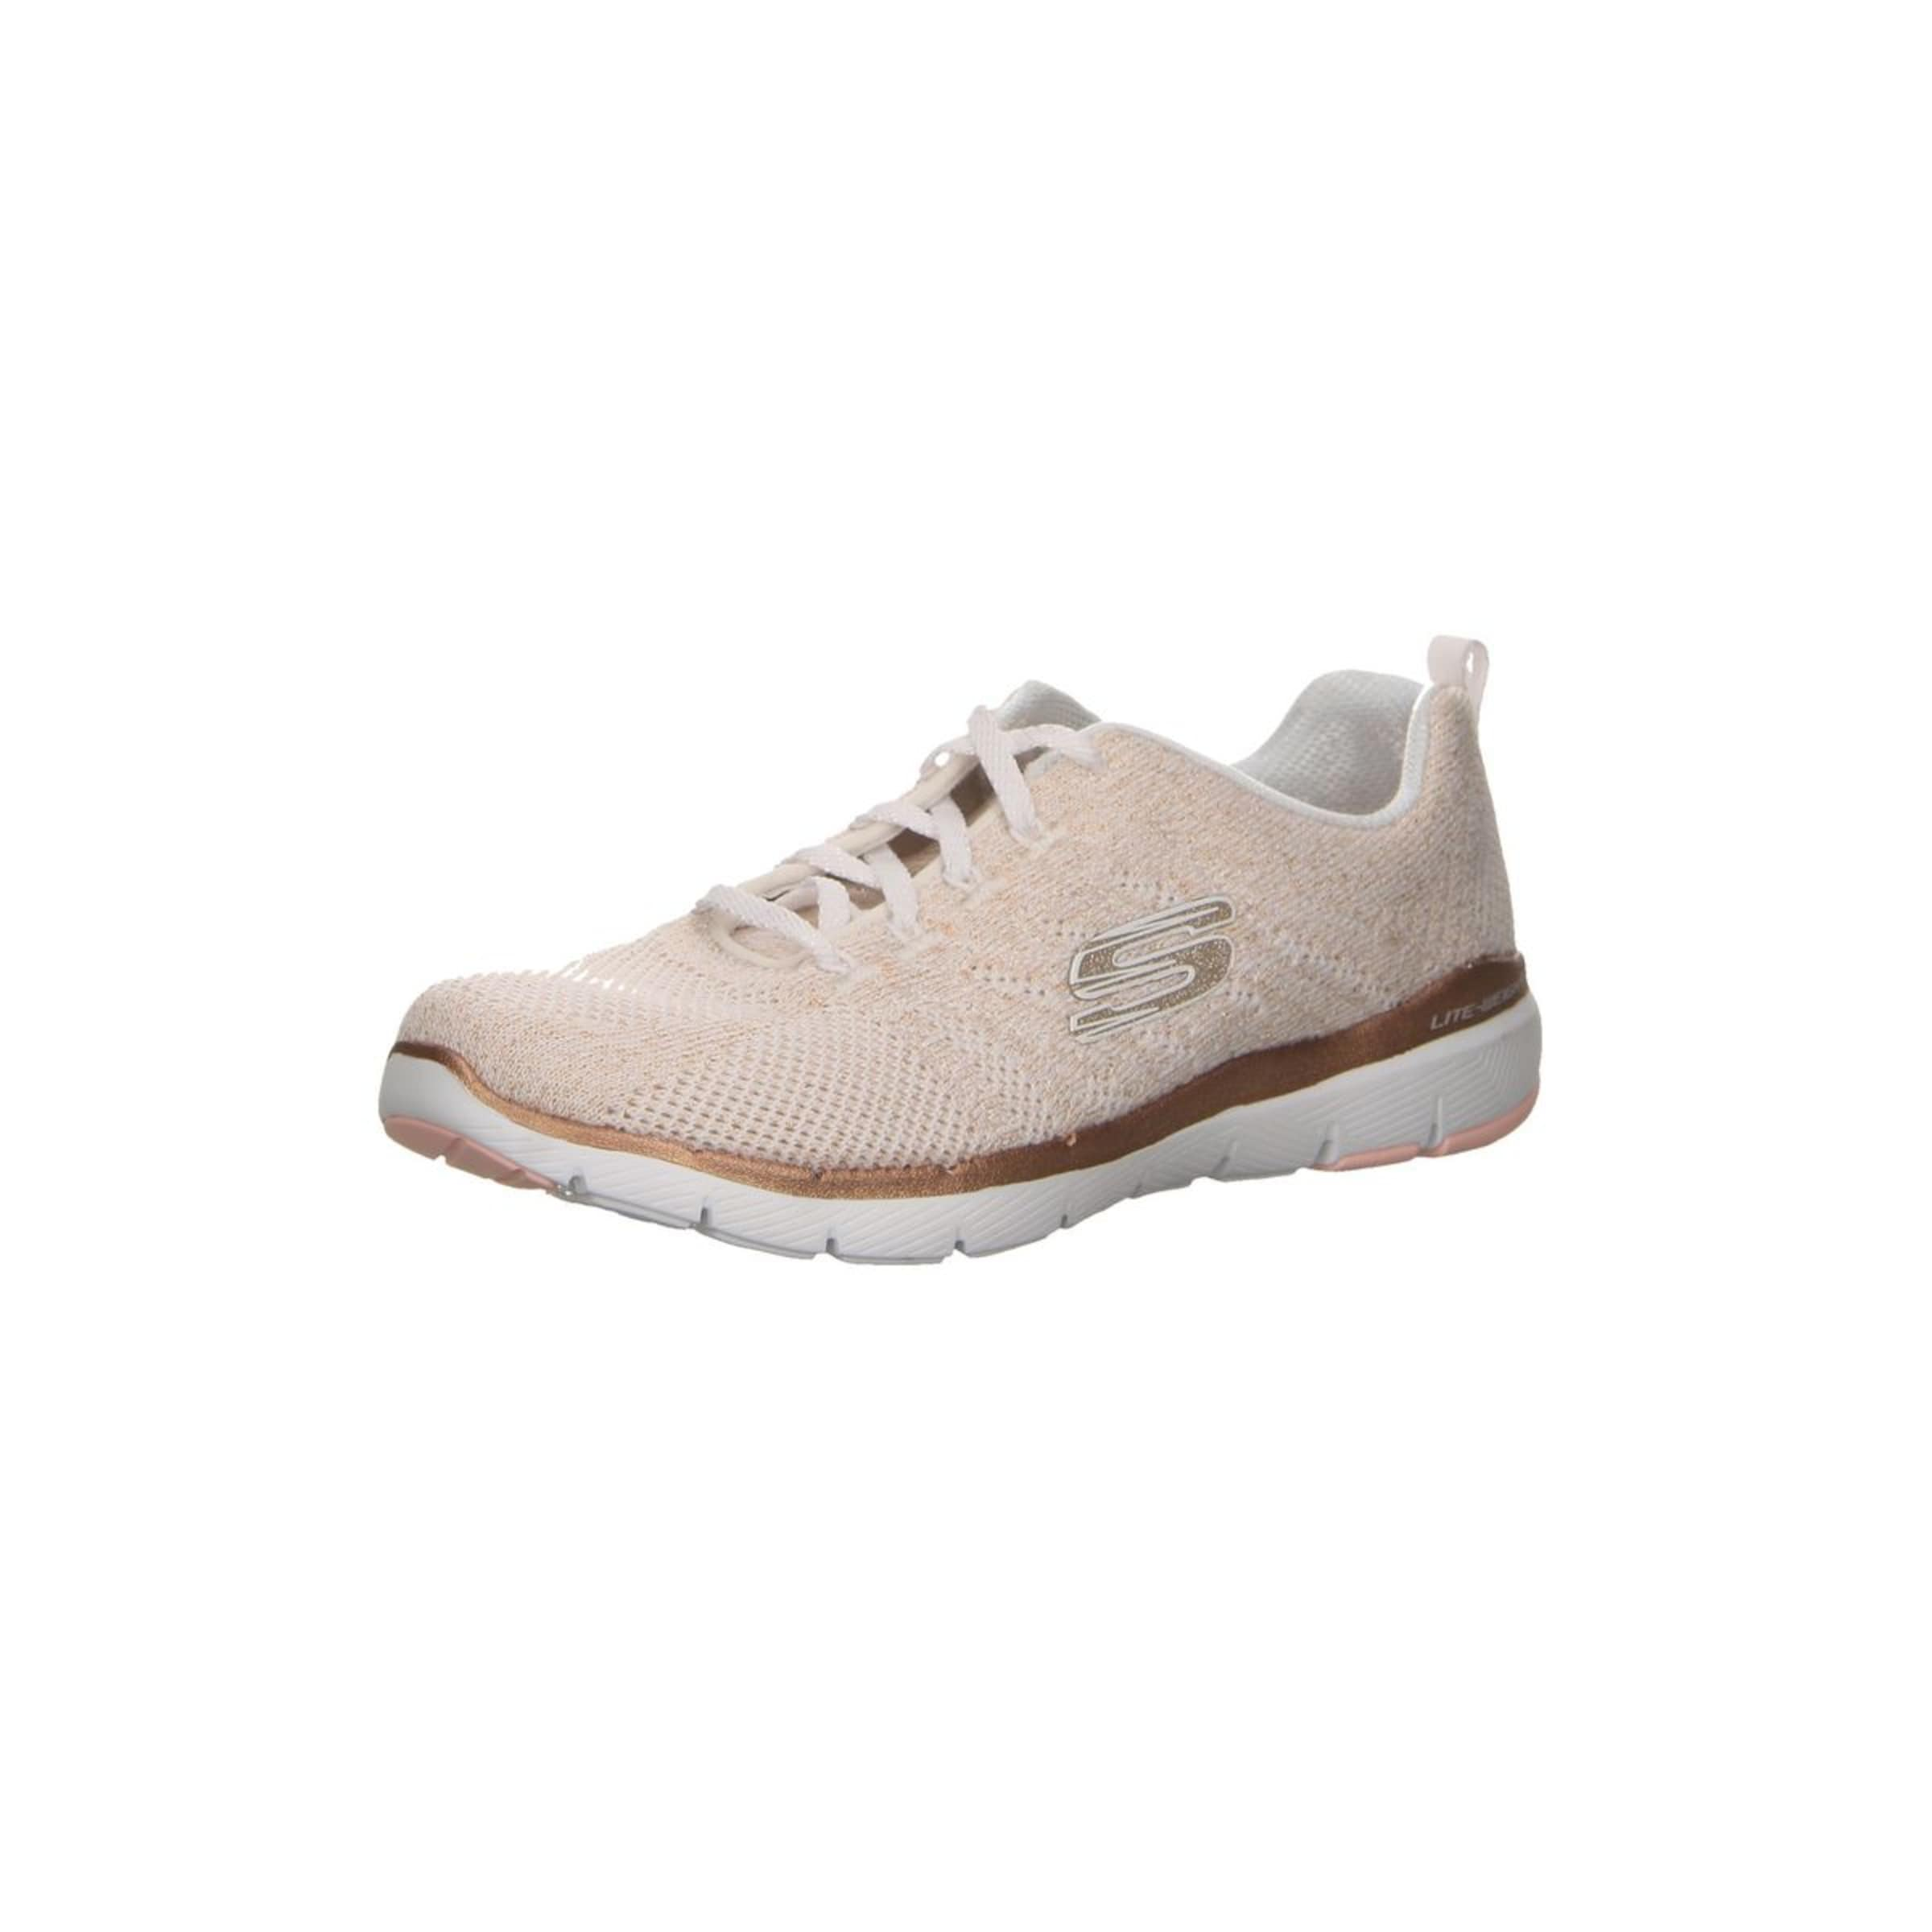 3 'flex En RoseBlanc Or Skechers 0' Baskets Appeal Basses QtsxdrohCB